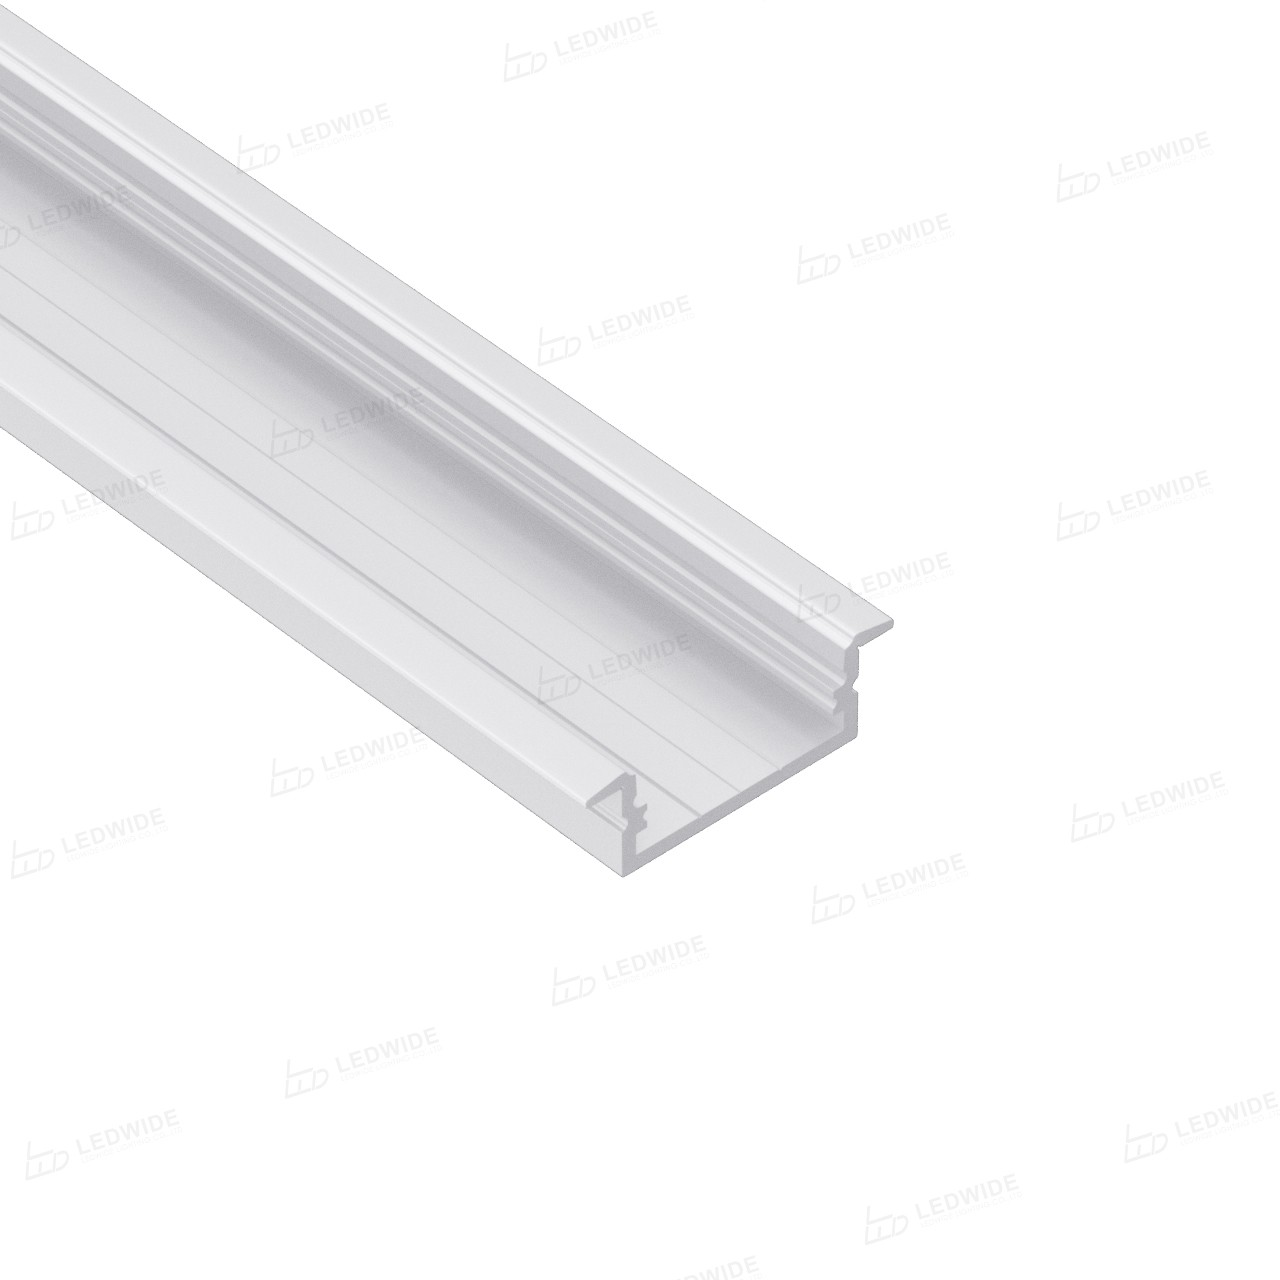 AR3 Recessed Led Aluminum Profile Manufacturers, AR3 Recessed Led Aluminum Profile Factory, Supply AR3 Recessed Led Aluminum Profile